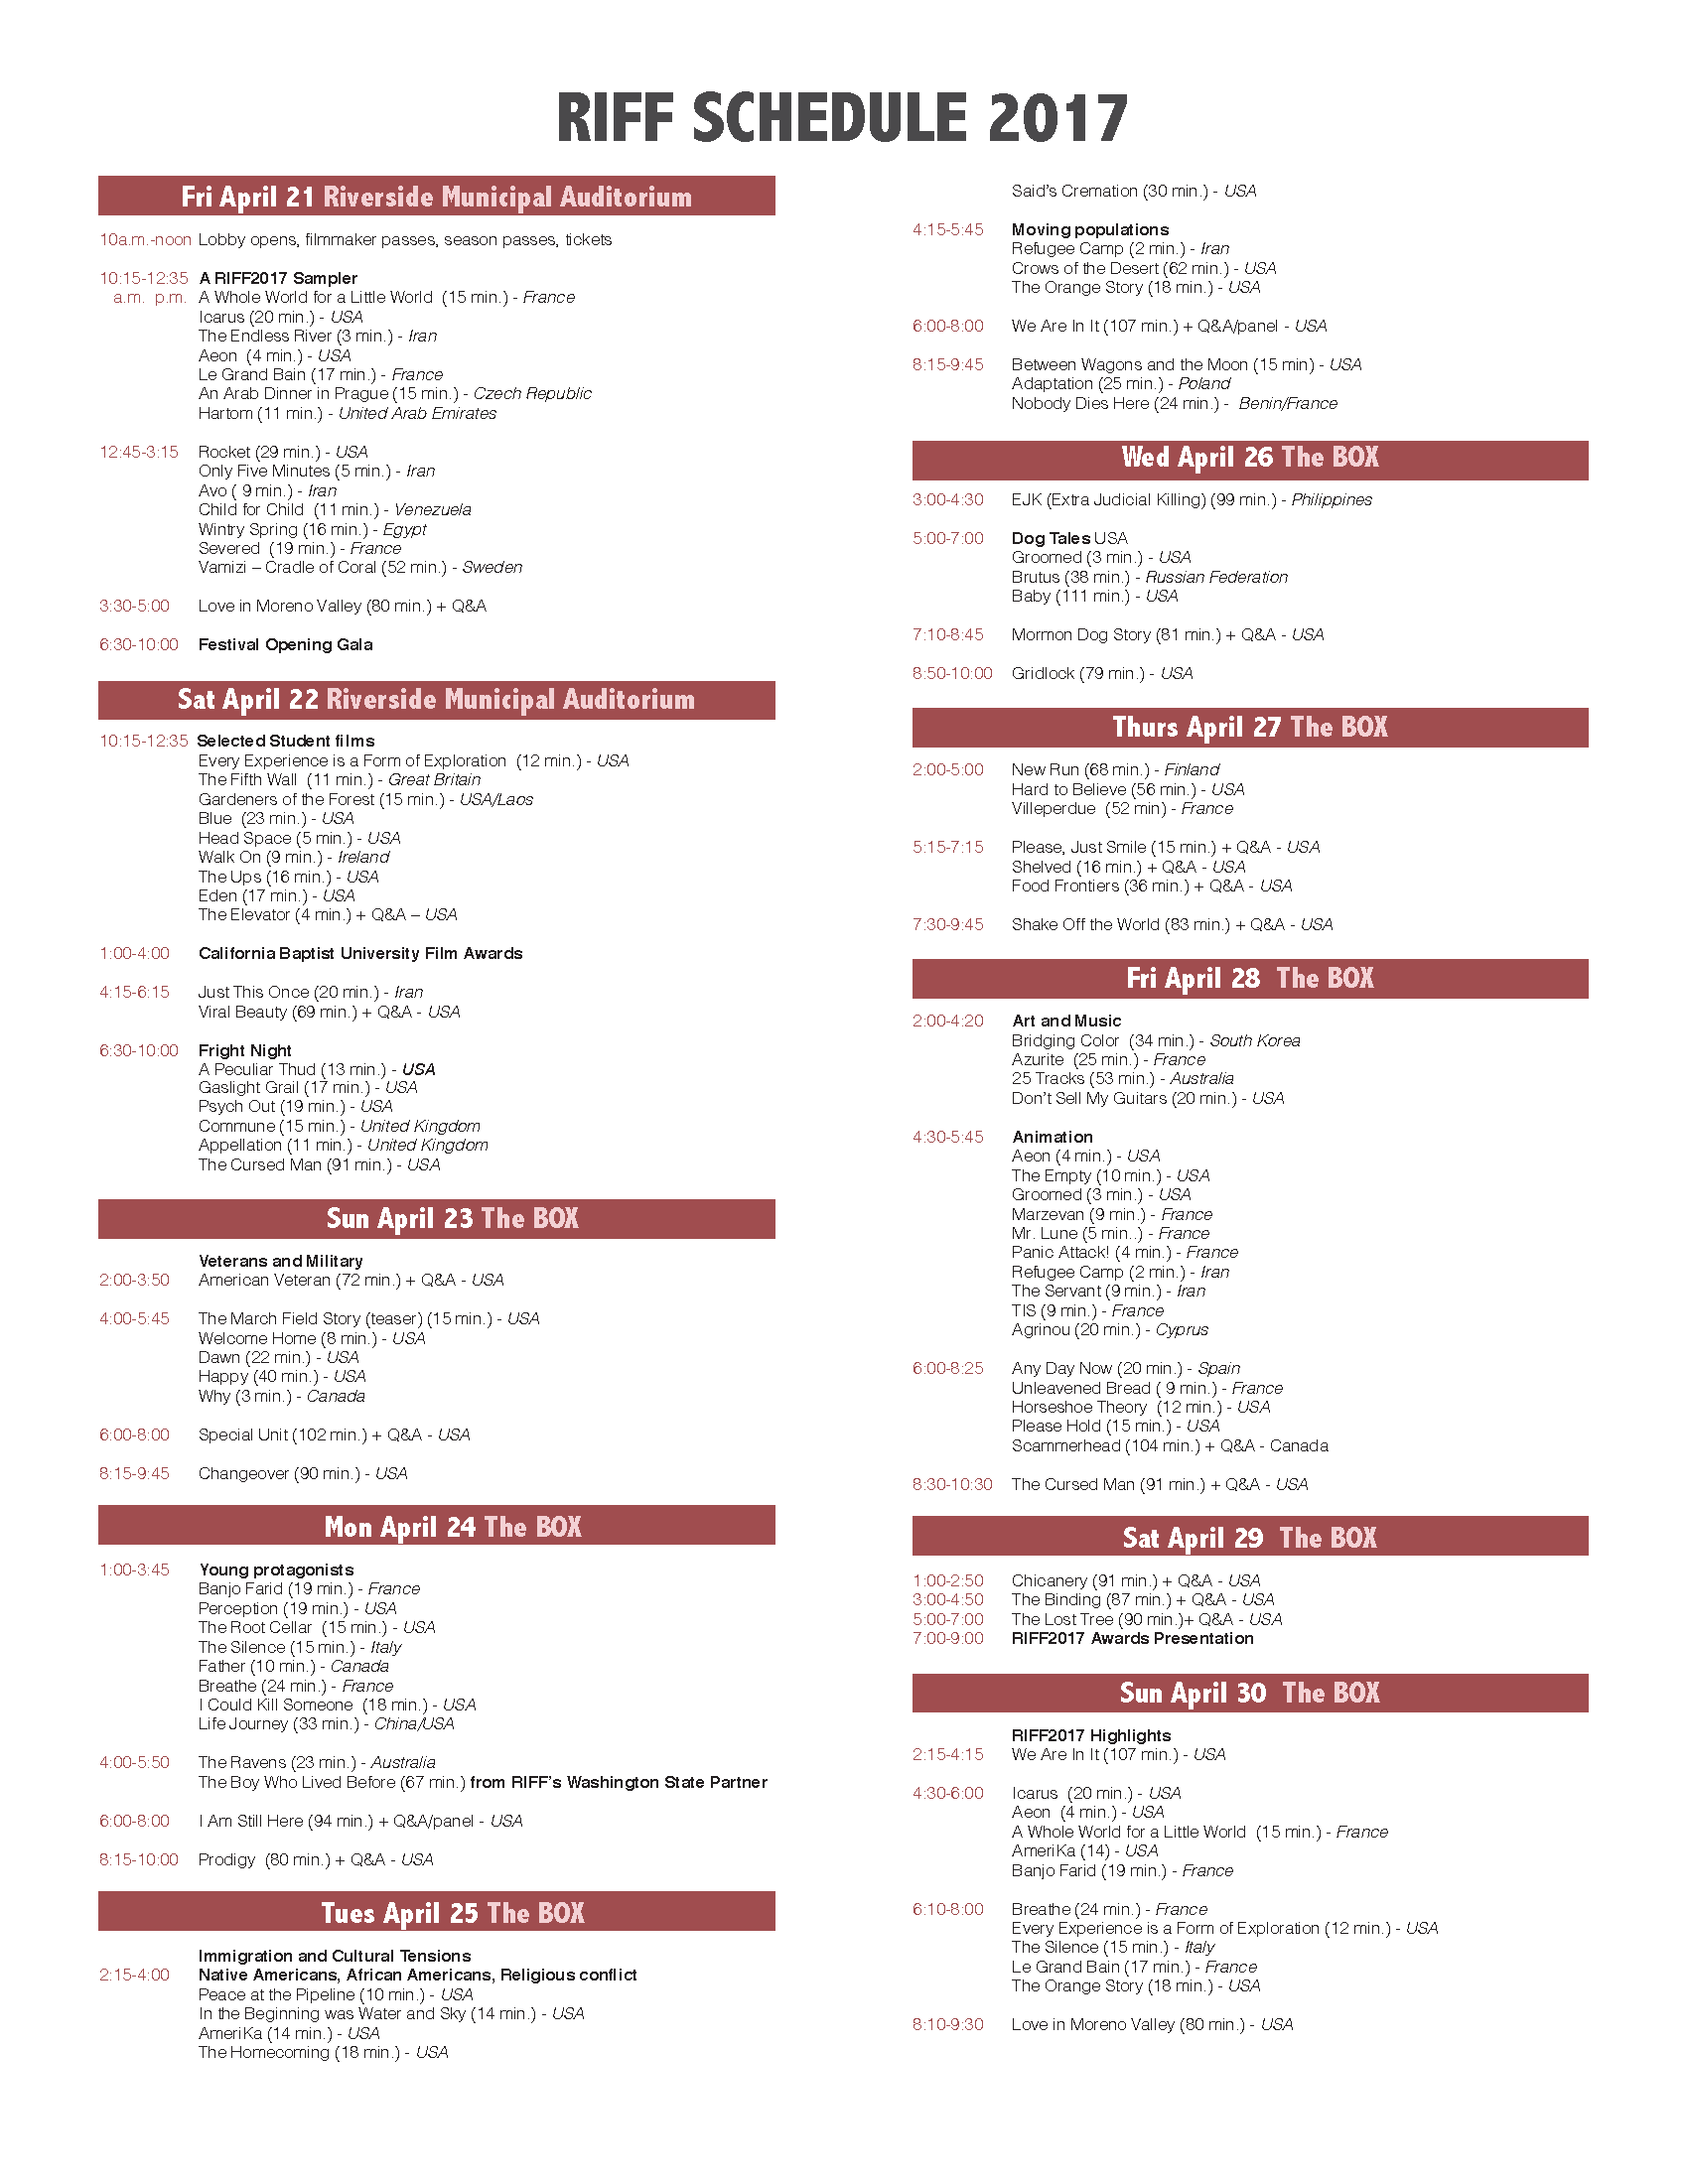 RIFF Schedule 2017.png